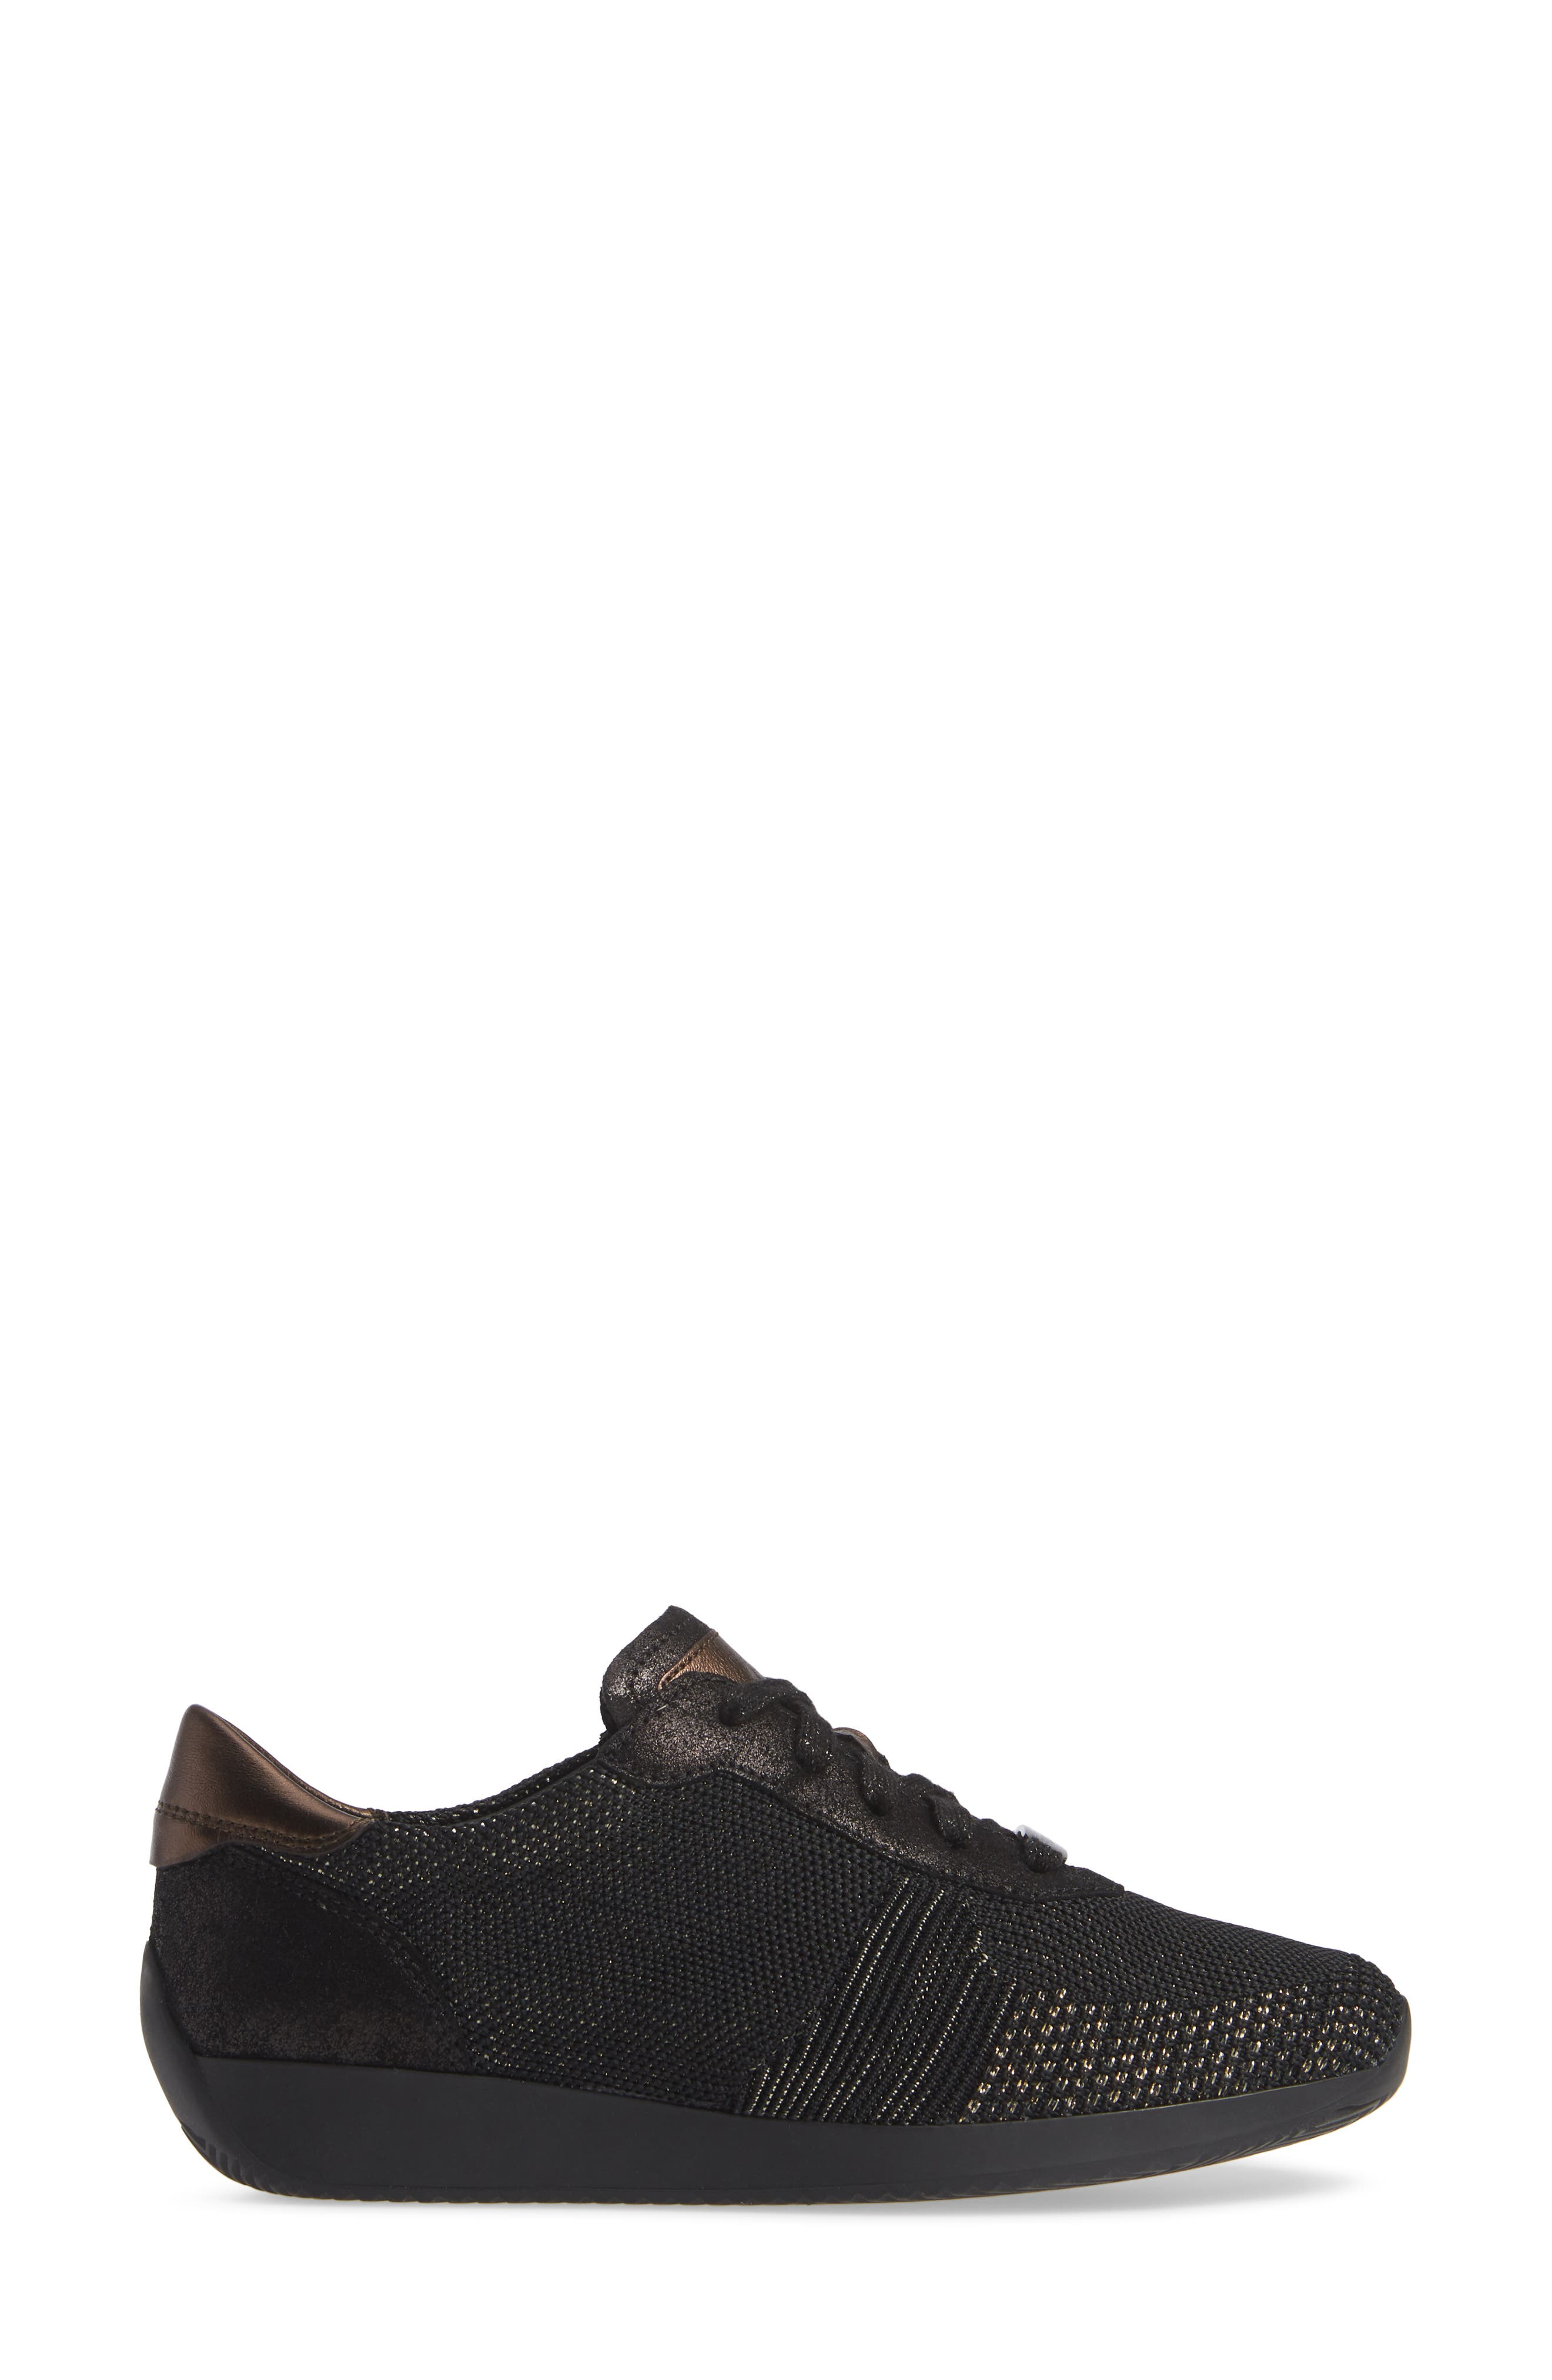 Lilly Sneaker,                             Alternate thumbnail 3, color,                             BLACK/ BLACK LEATHER